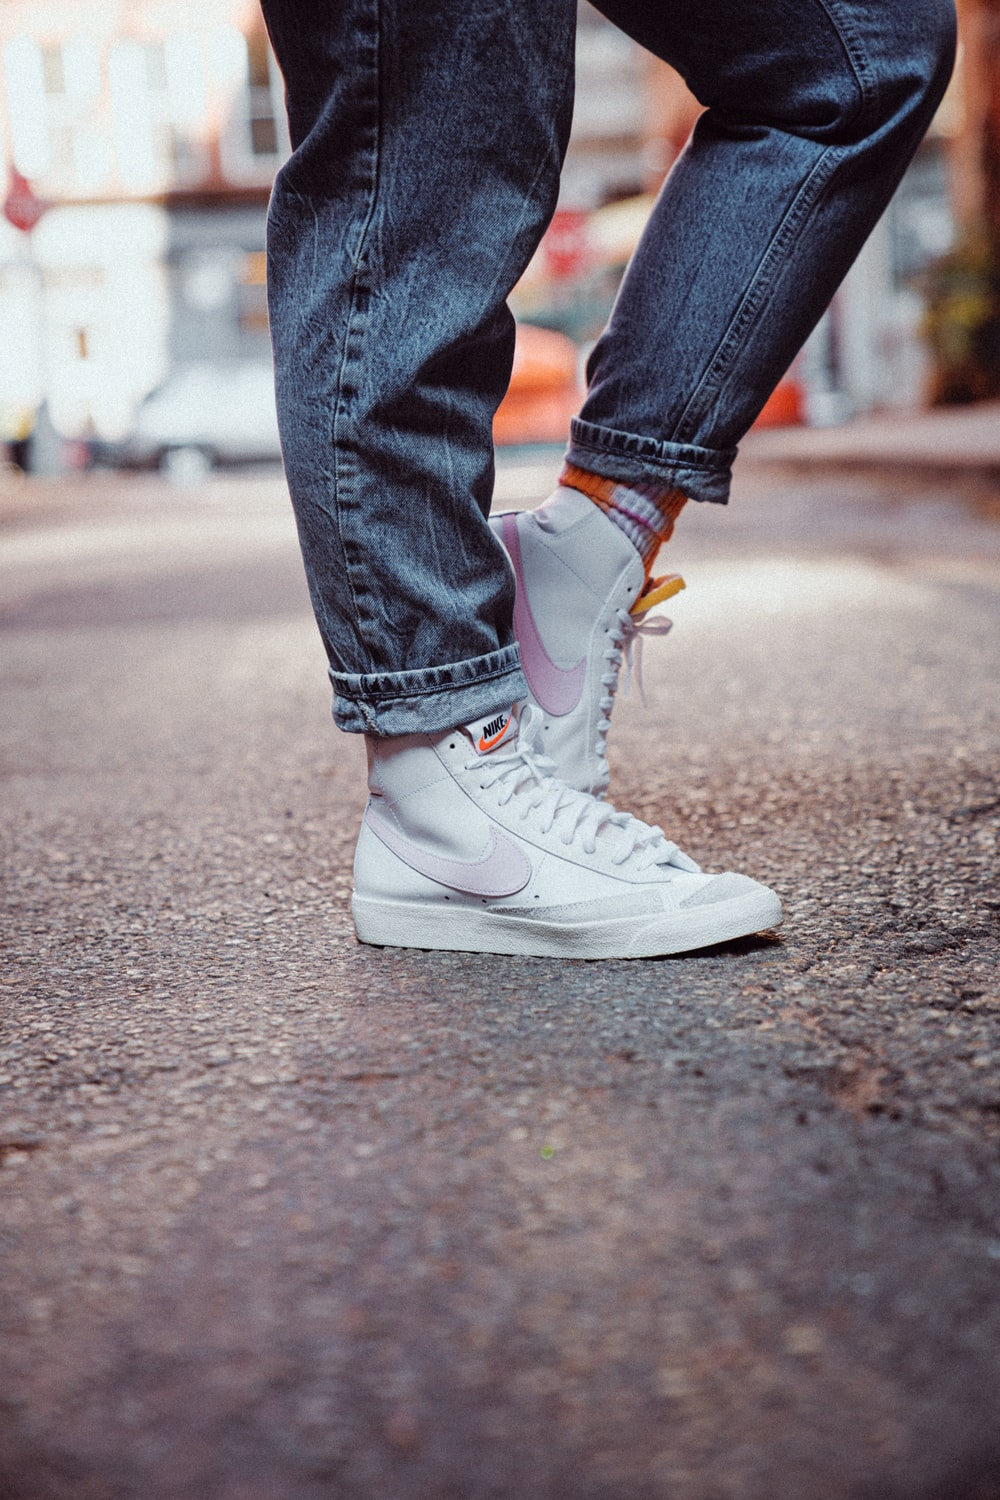 person in blue denim jeans and white nike sneakers